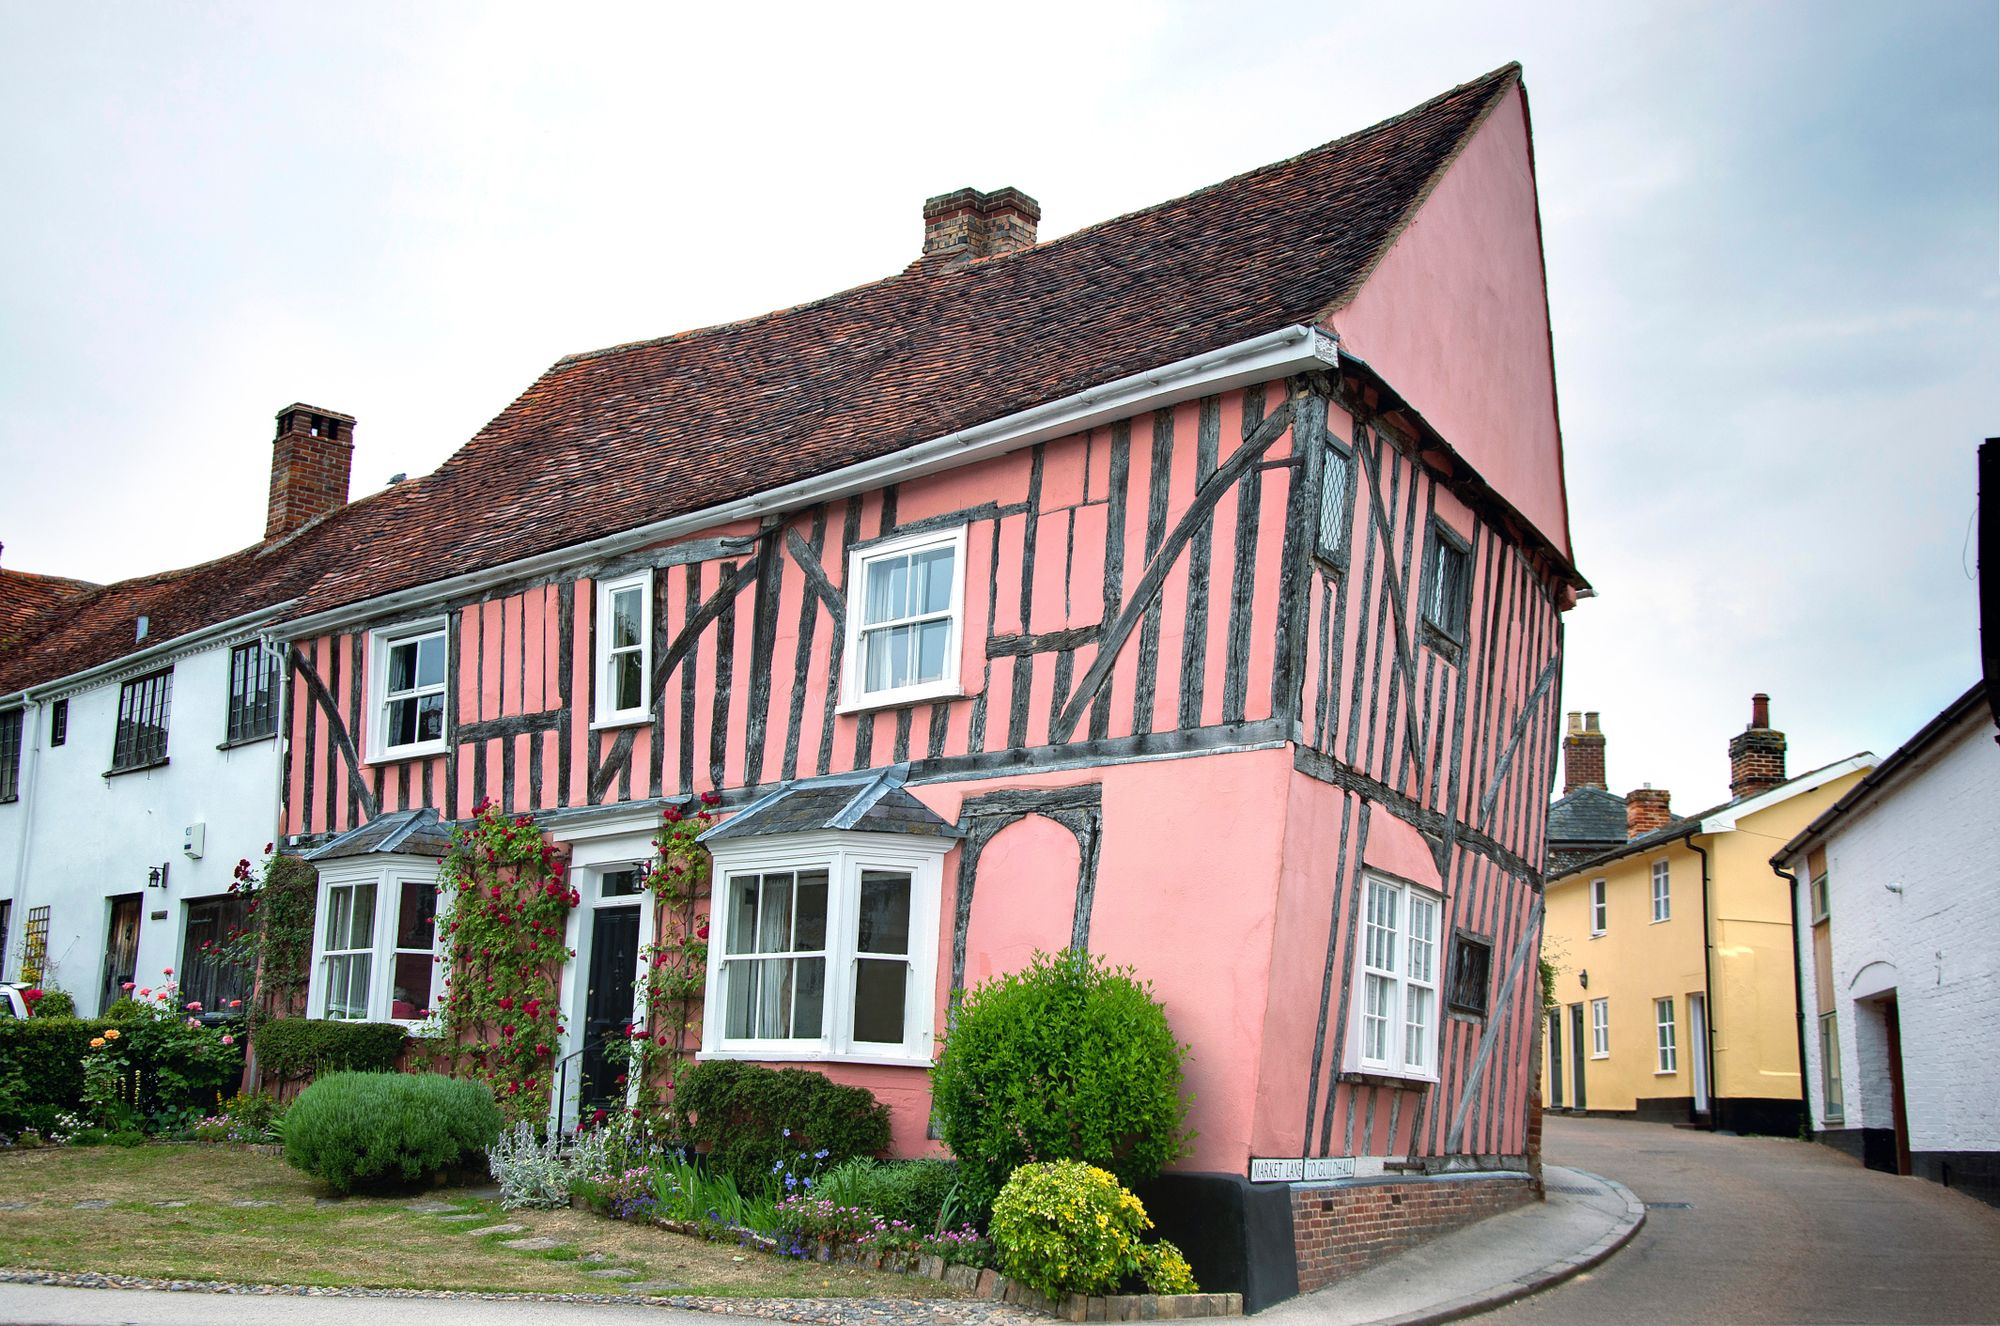 Lavenham is one of the best villages in England for a London daytrip